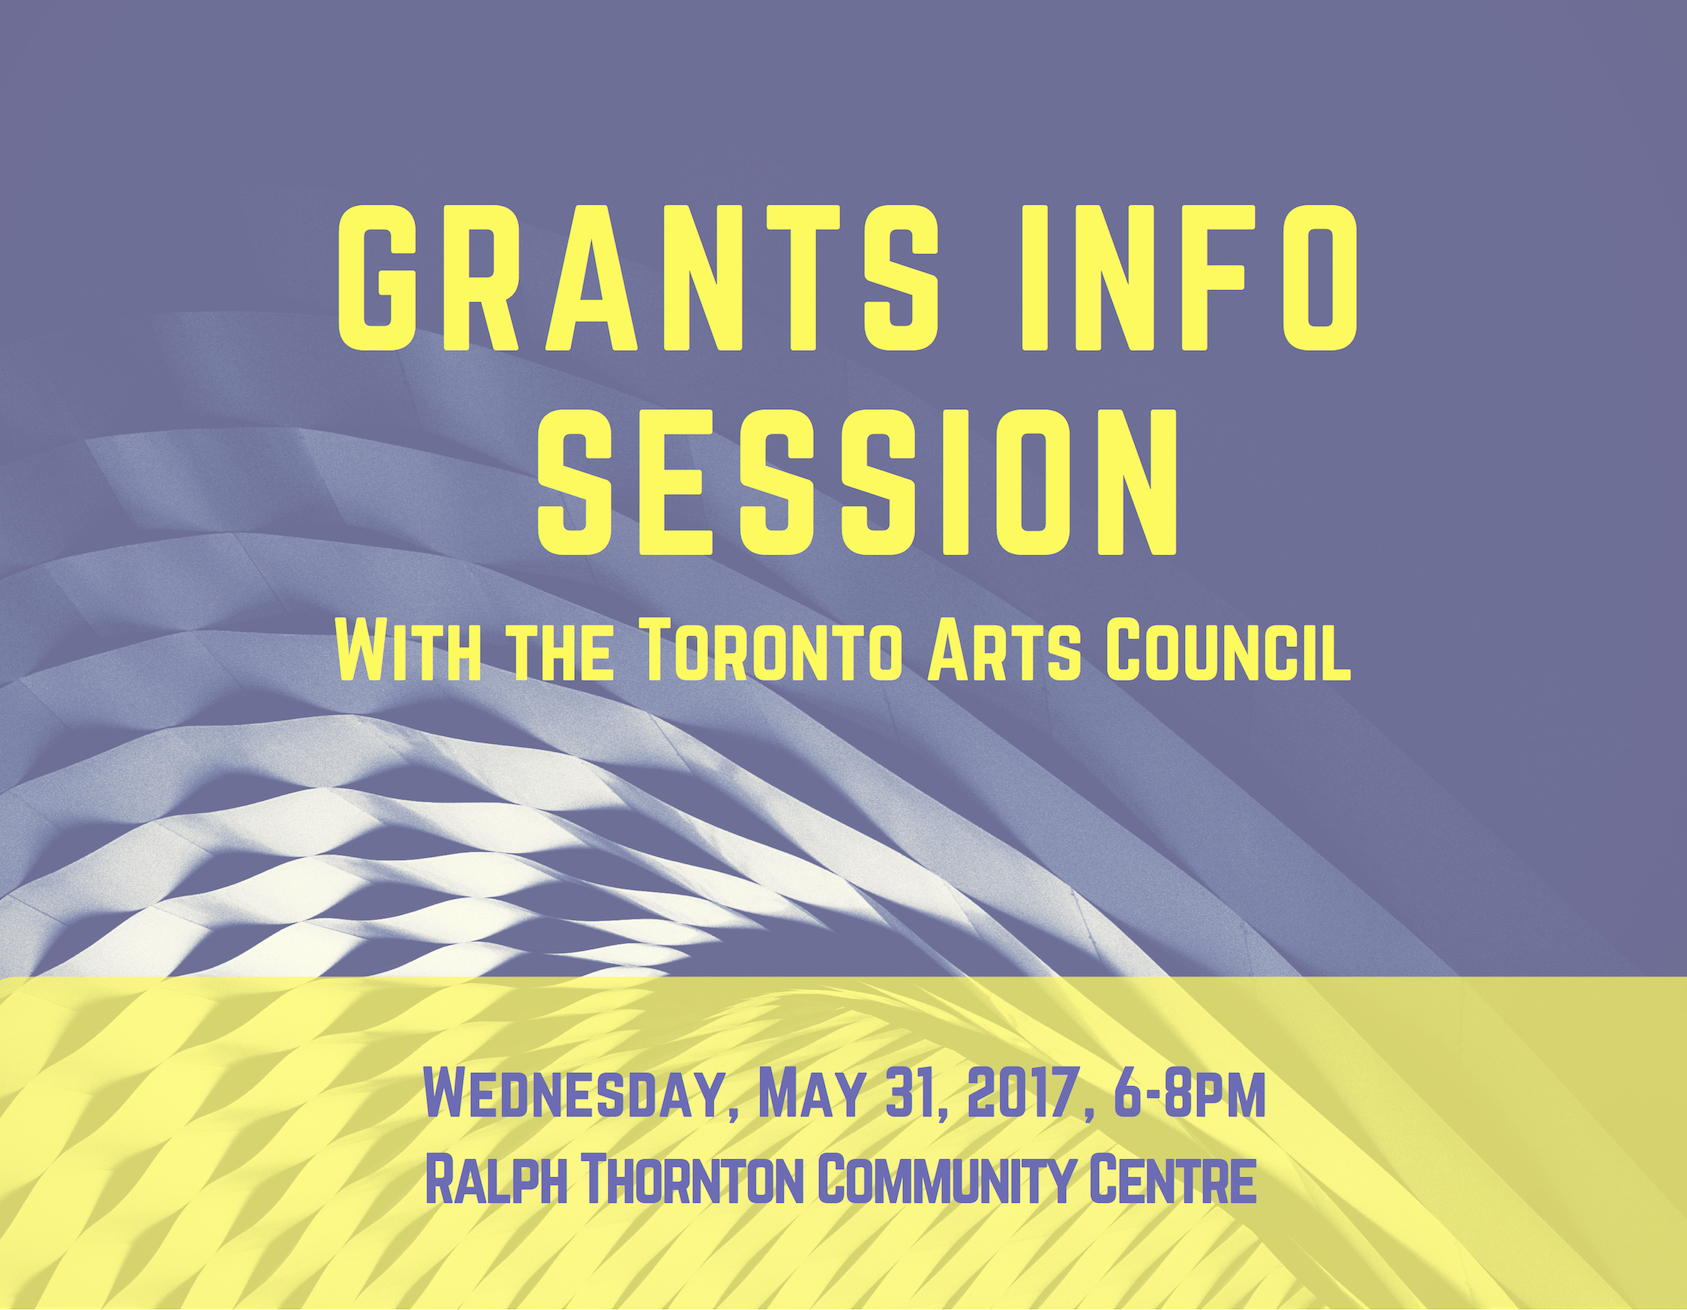 Grants Info Session